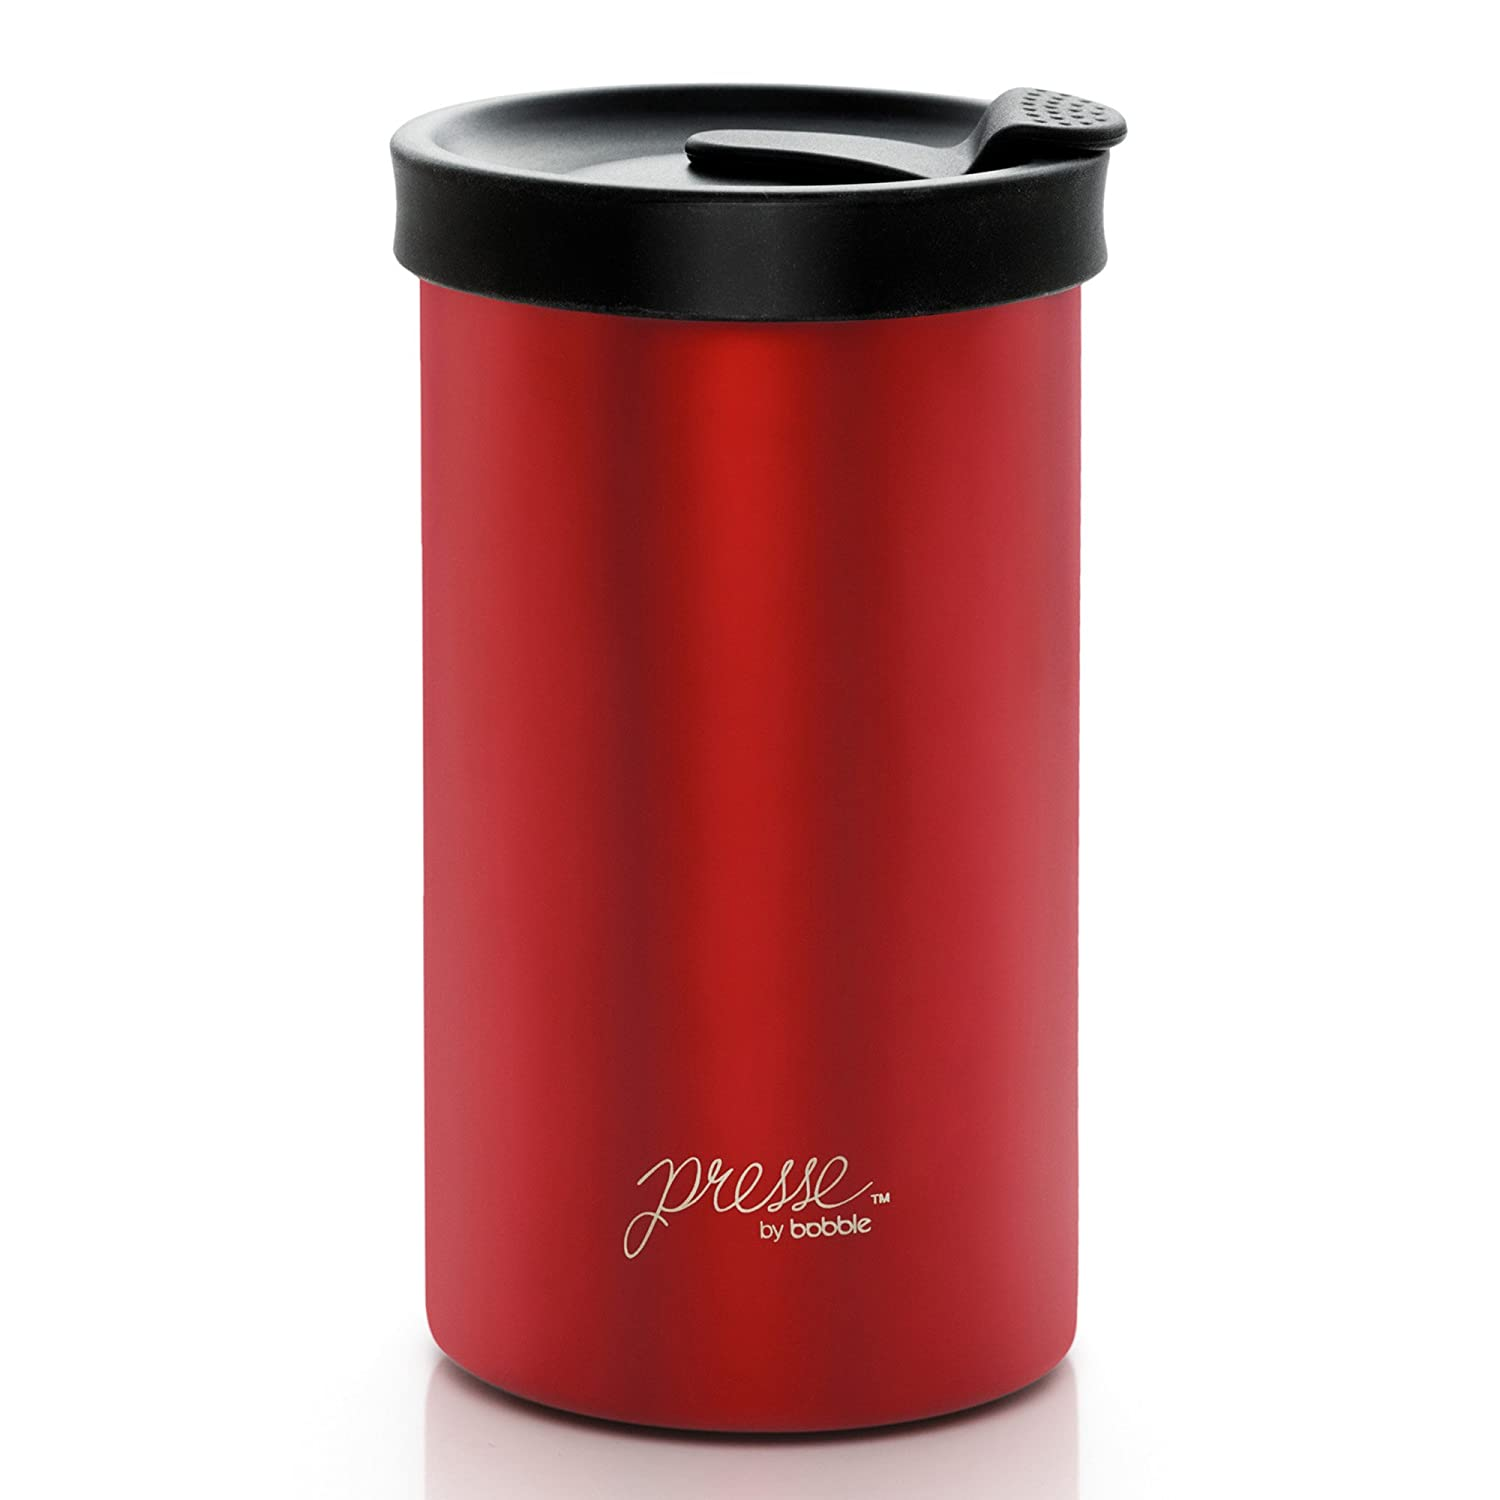 Presse by bobble Coffee & Tea Maker, Press Coffee Maker, Travel Tumbler, Stainless Steel, On the Go Brewer, Brew Press & Go, Portable Coffee Brewer and Tumbler in One, 13 oz., Black BTC000100O006BND